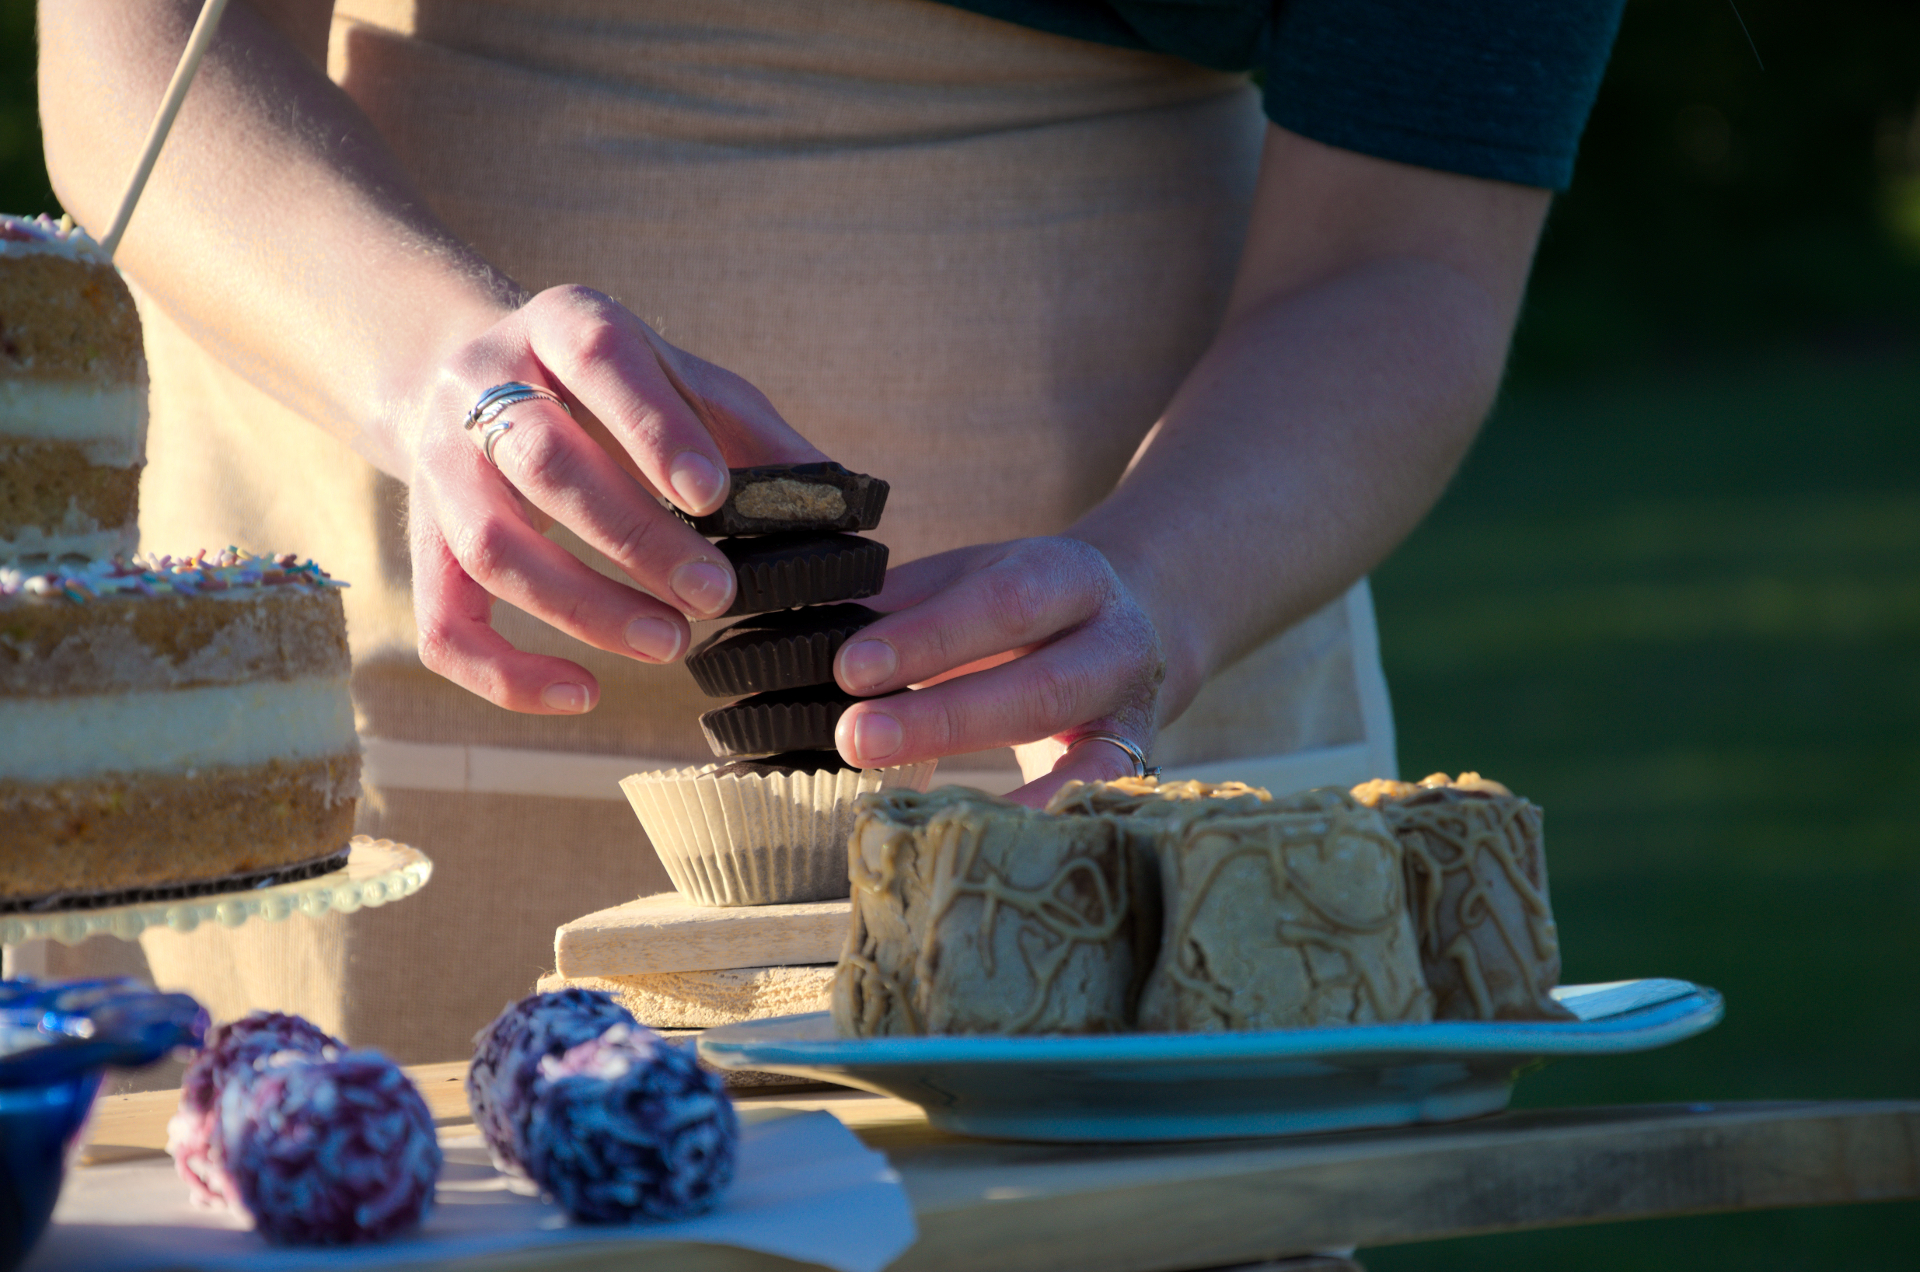 Here's me stacking some tasty Peanut Butter Cups with a Cinnamon Roll Cake and other healthy desserts on the table